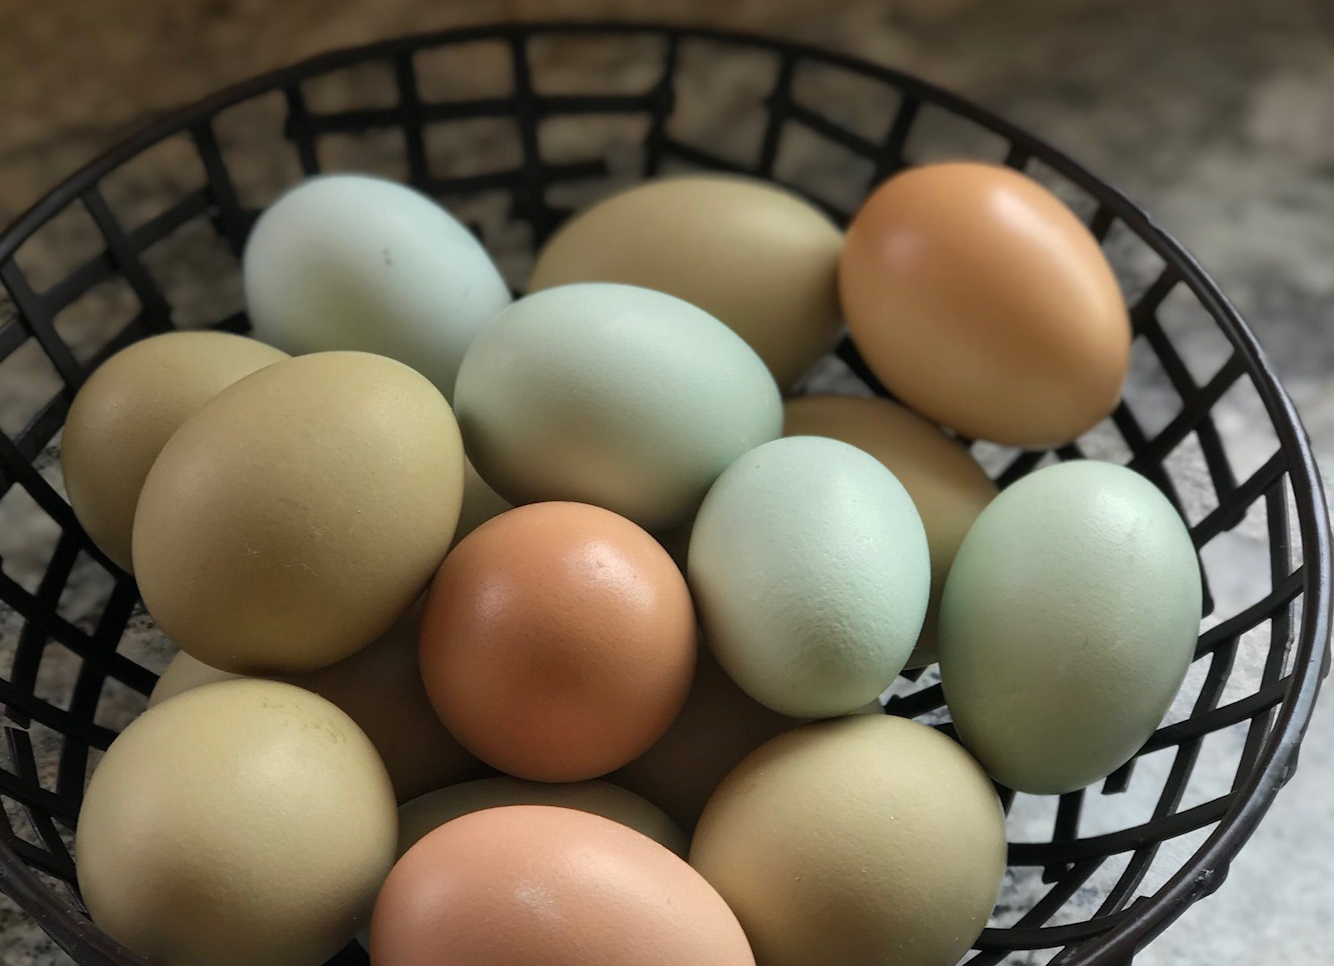 Fresh Eggs: Healthy, Sustainable and Colorful